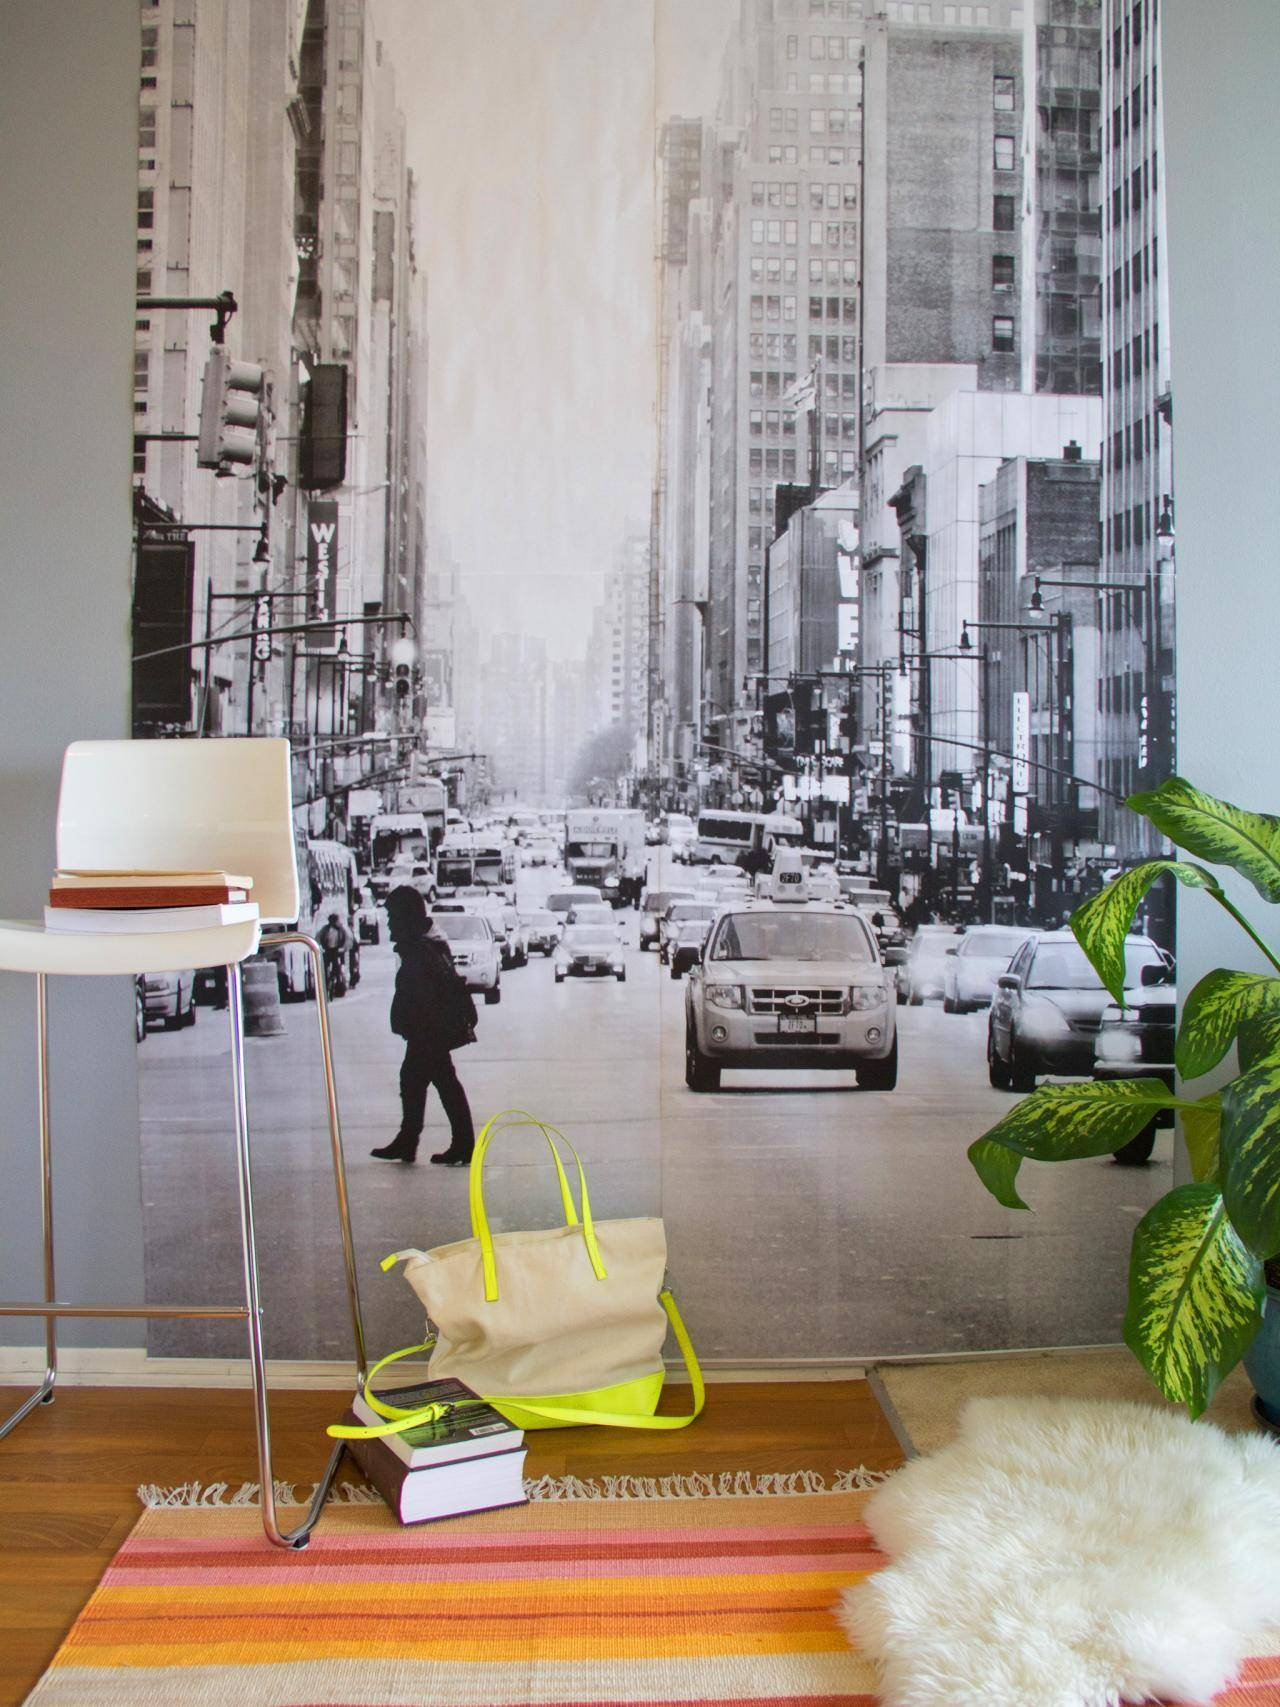 7 Diy Art Projects To Try | Hgtv's Decorating & Design Blog | Hgtv Intended For 2018 Big Cheap Wall Art (View 1 of 20)